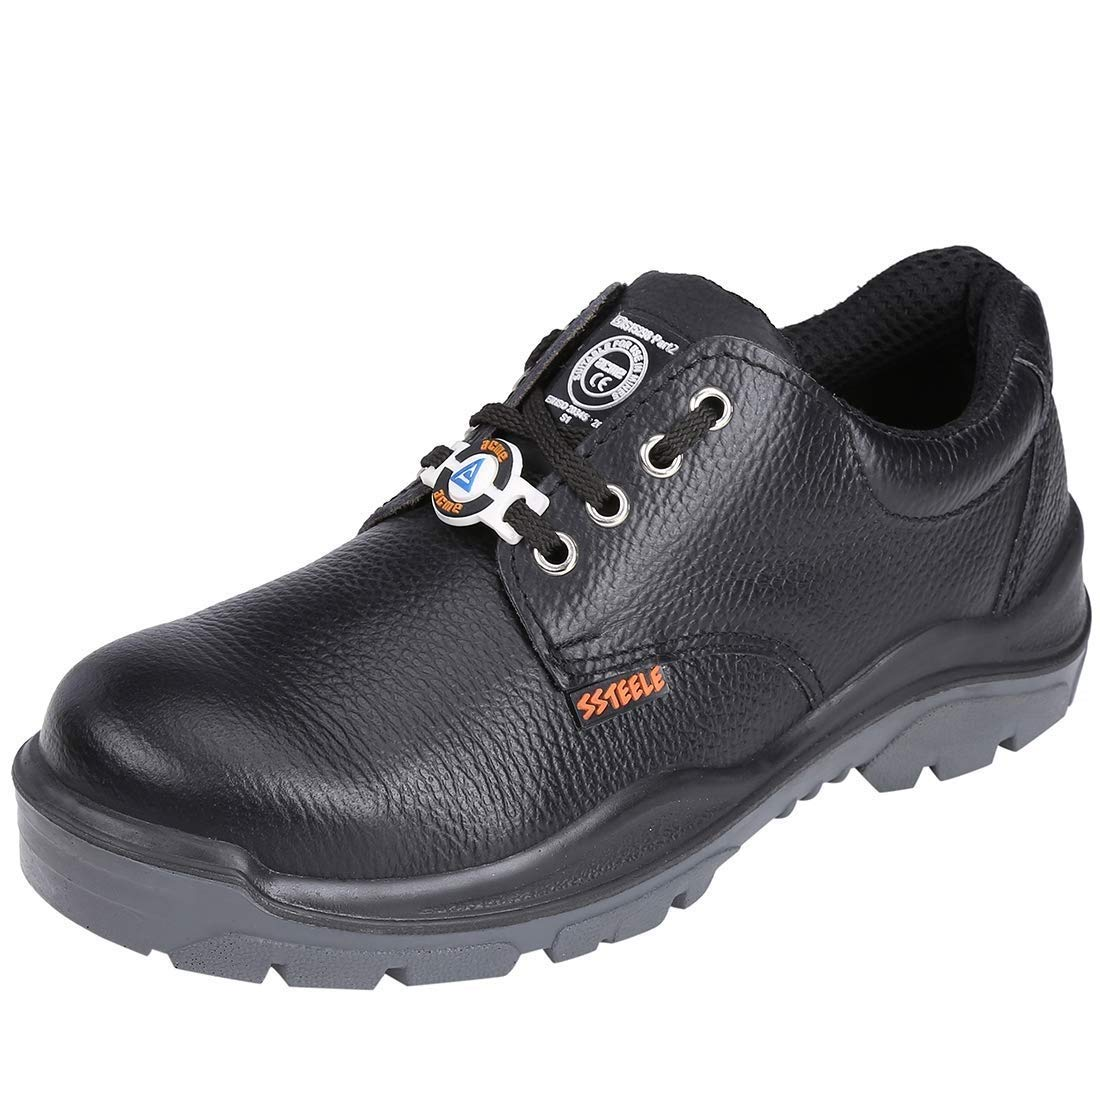 ACME Storm Leather Safety Shoes Black